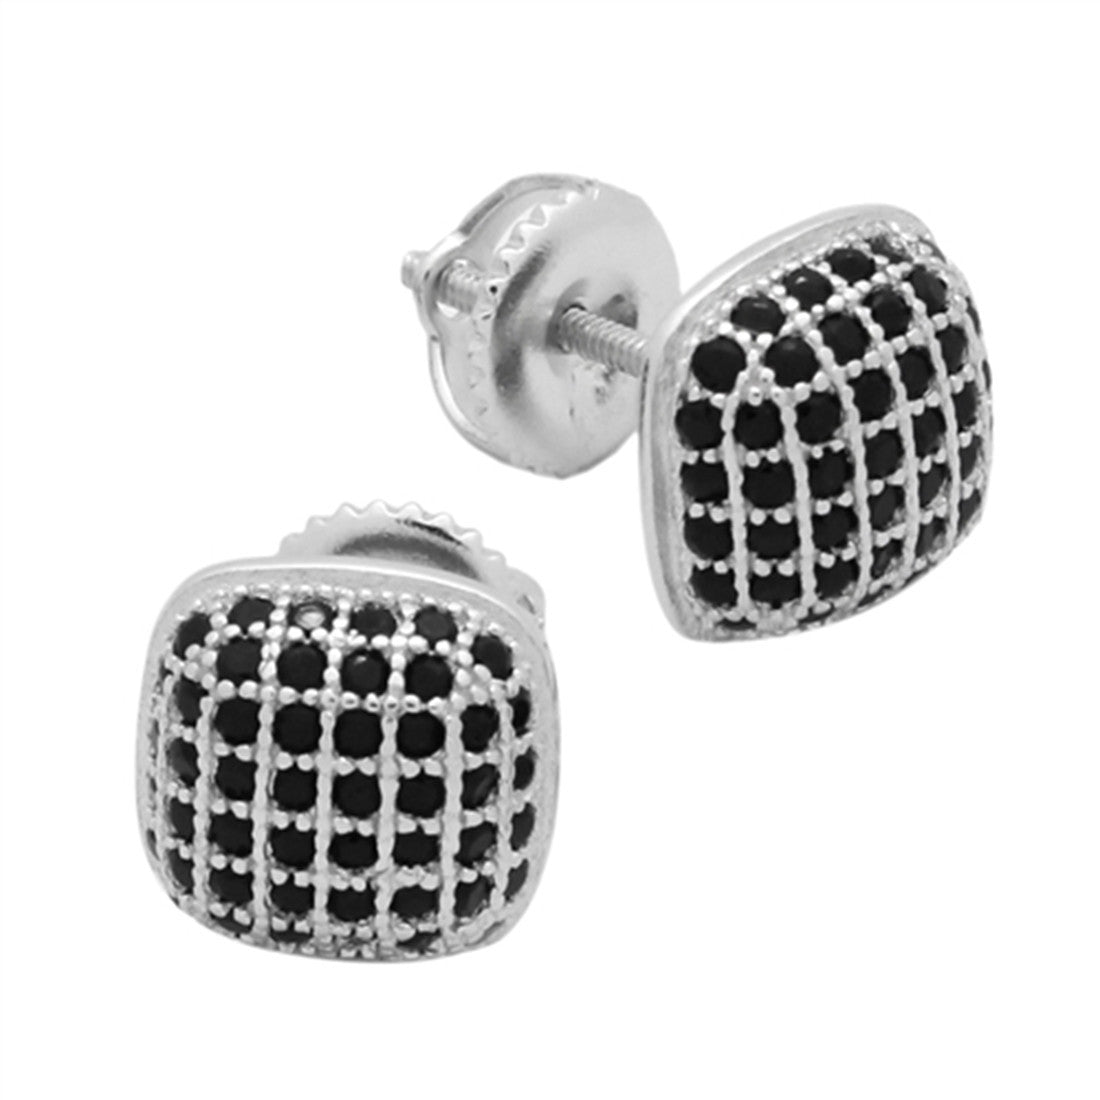 93ec3c35d ... Sterling Silver. 9mm Square Hip Hop Stud Earrings Men Women Unisex Pave  Black Cubic Zirconia Screw Back 925. Tap to expand